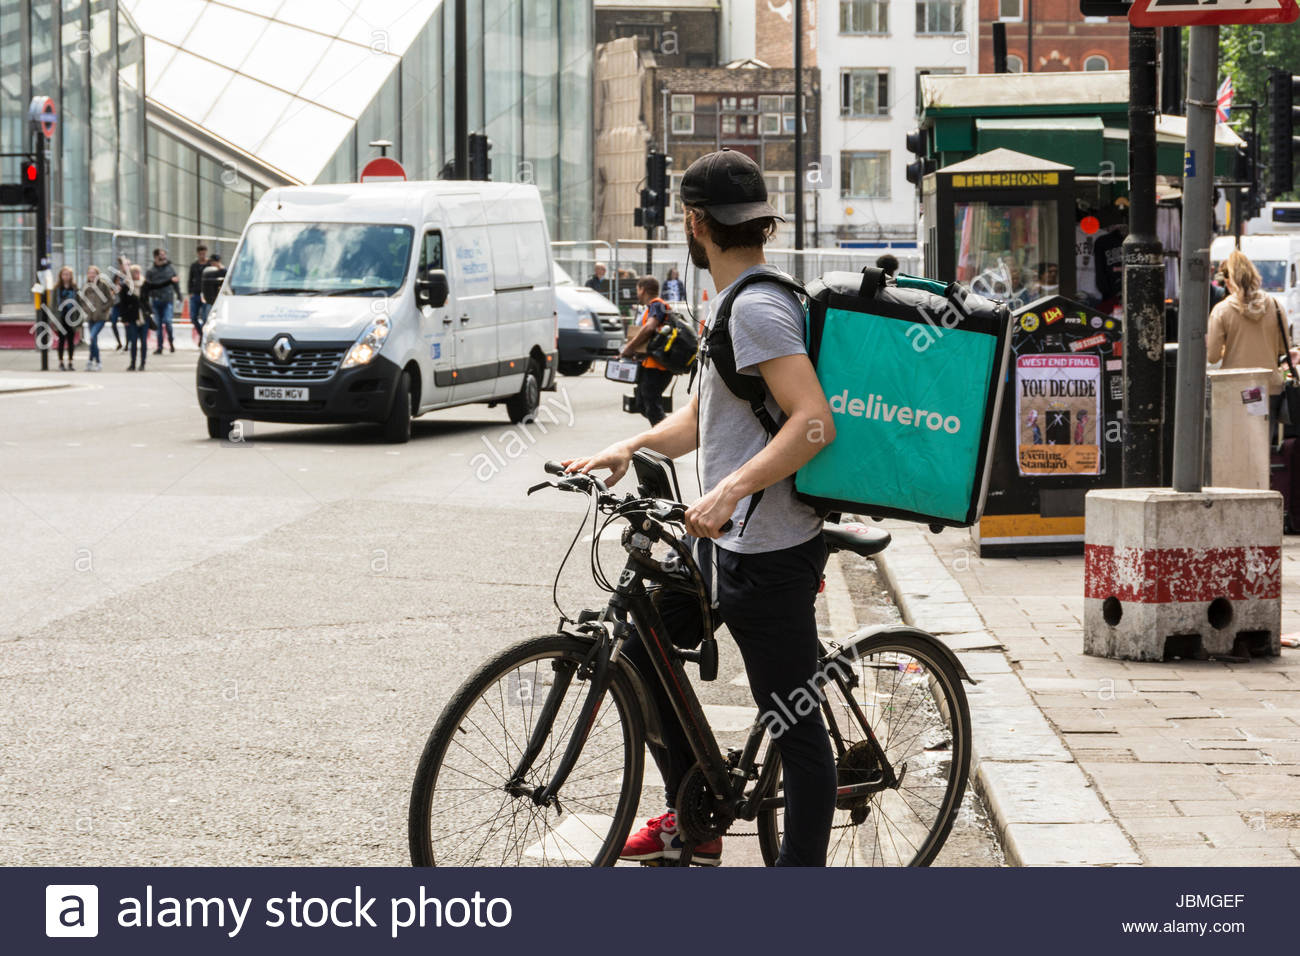 A Deliveroo driver on his bike in central London, UK Stock Photo